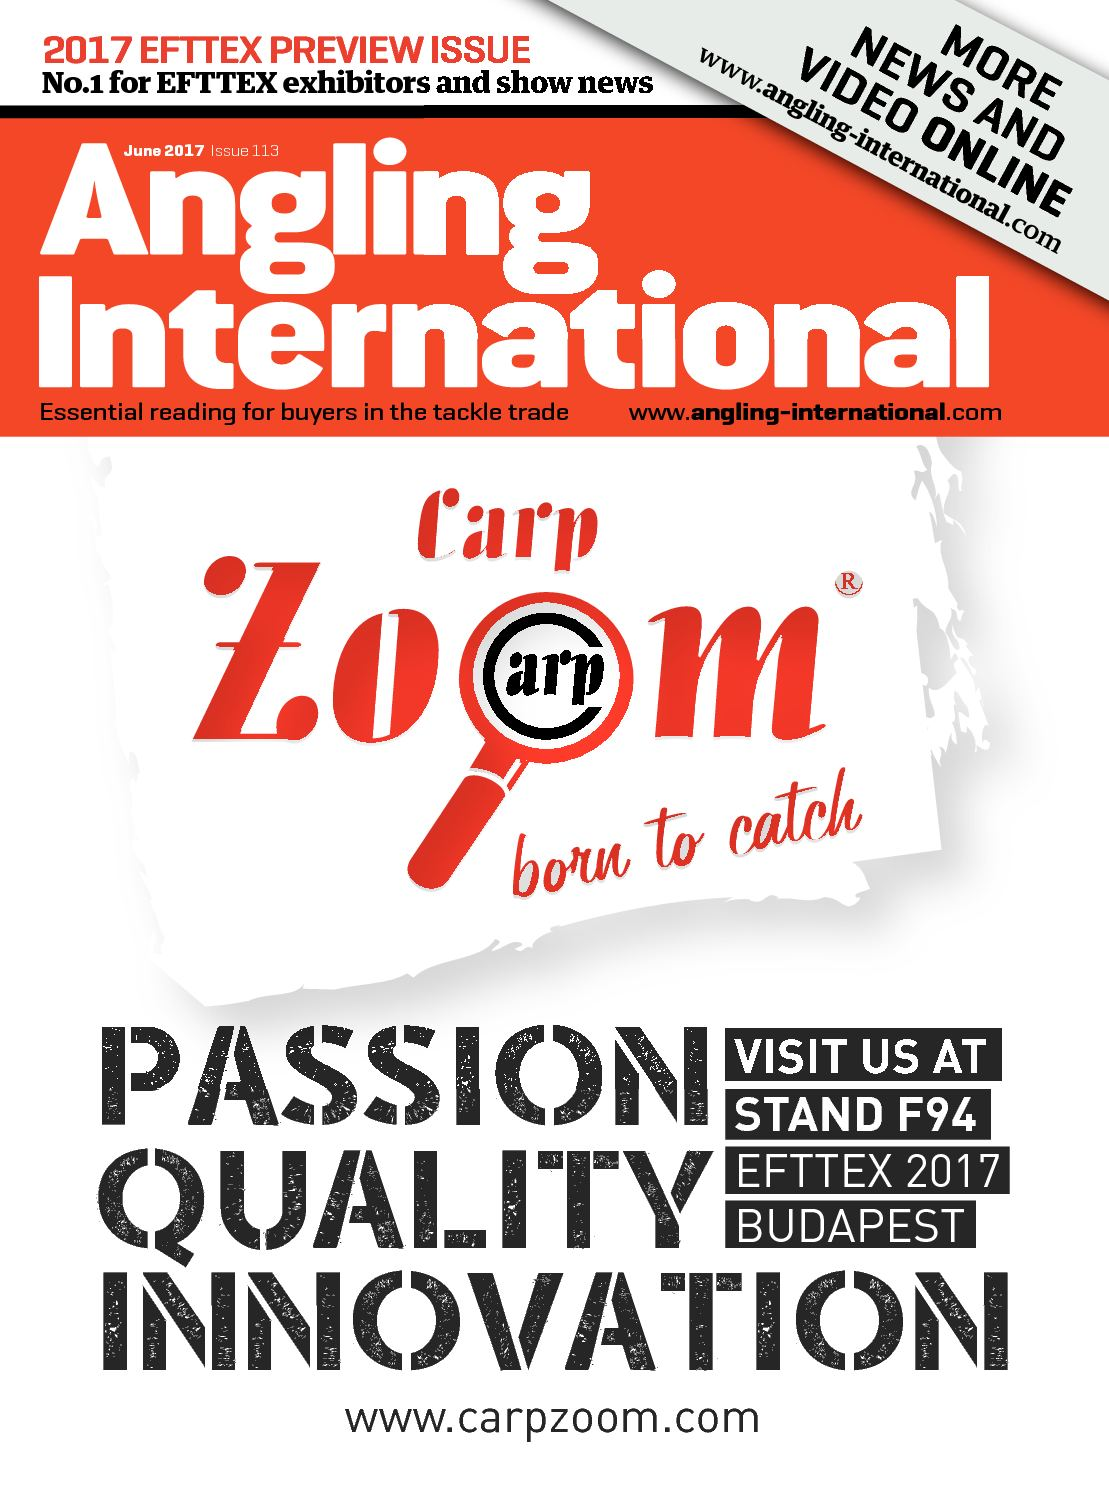 c192c134ef Calaméo - Angling International - June 2017 - issue 113